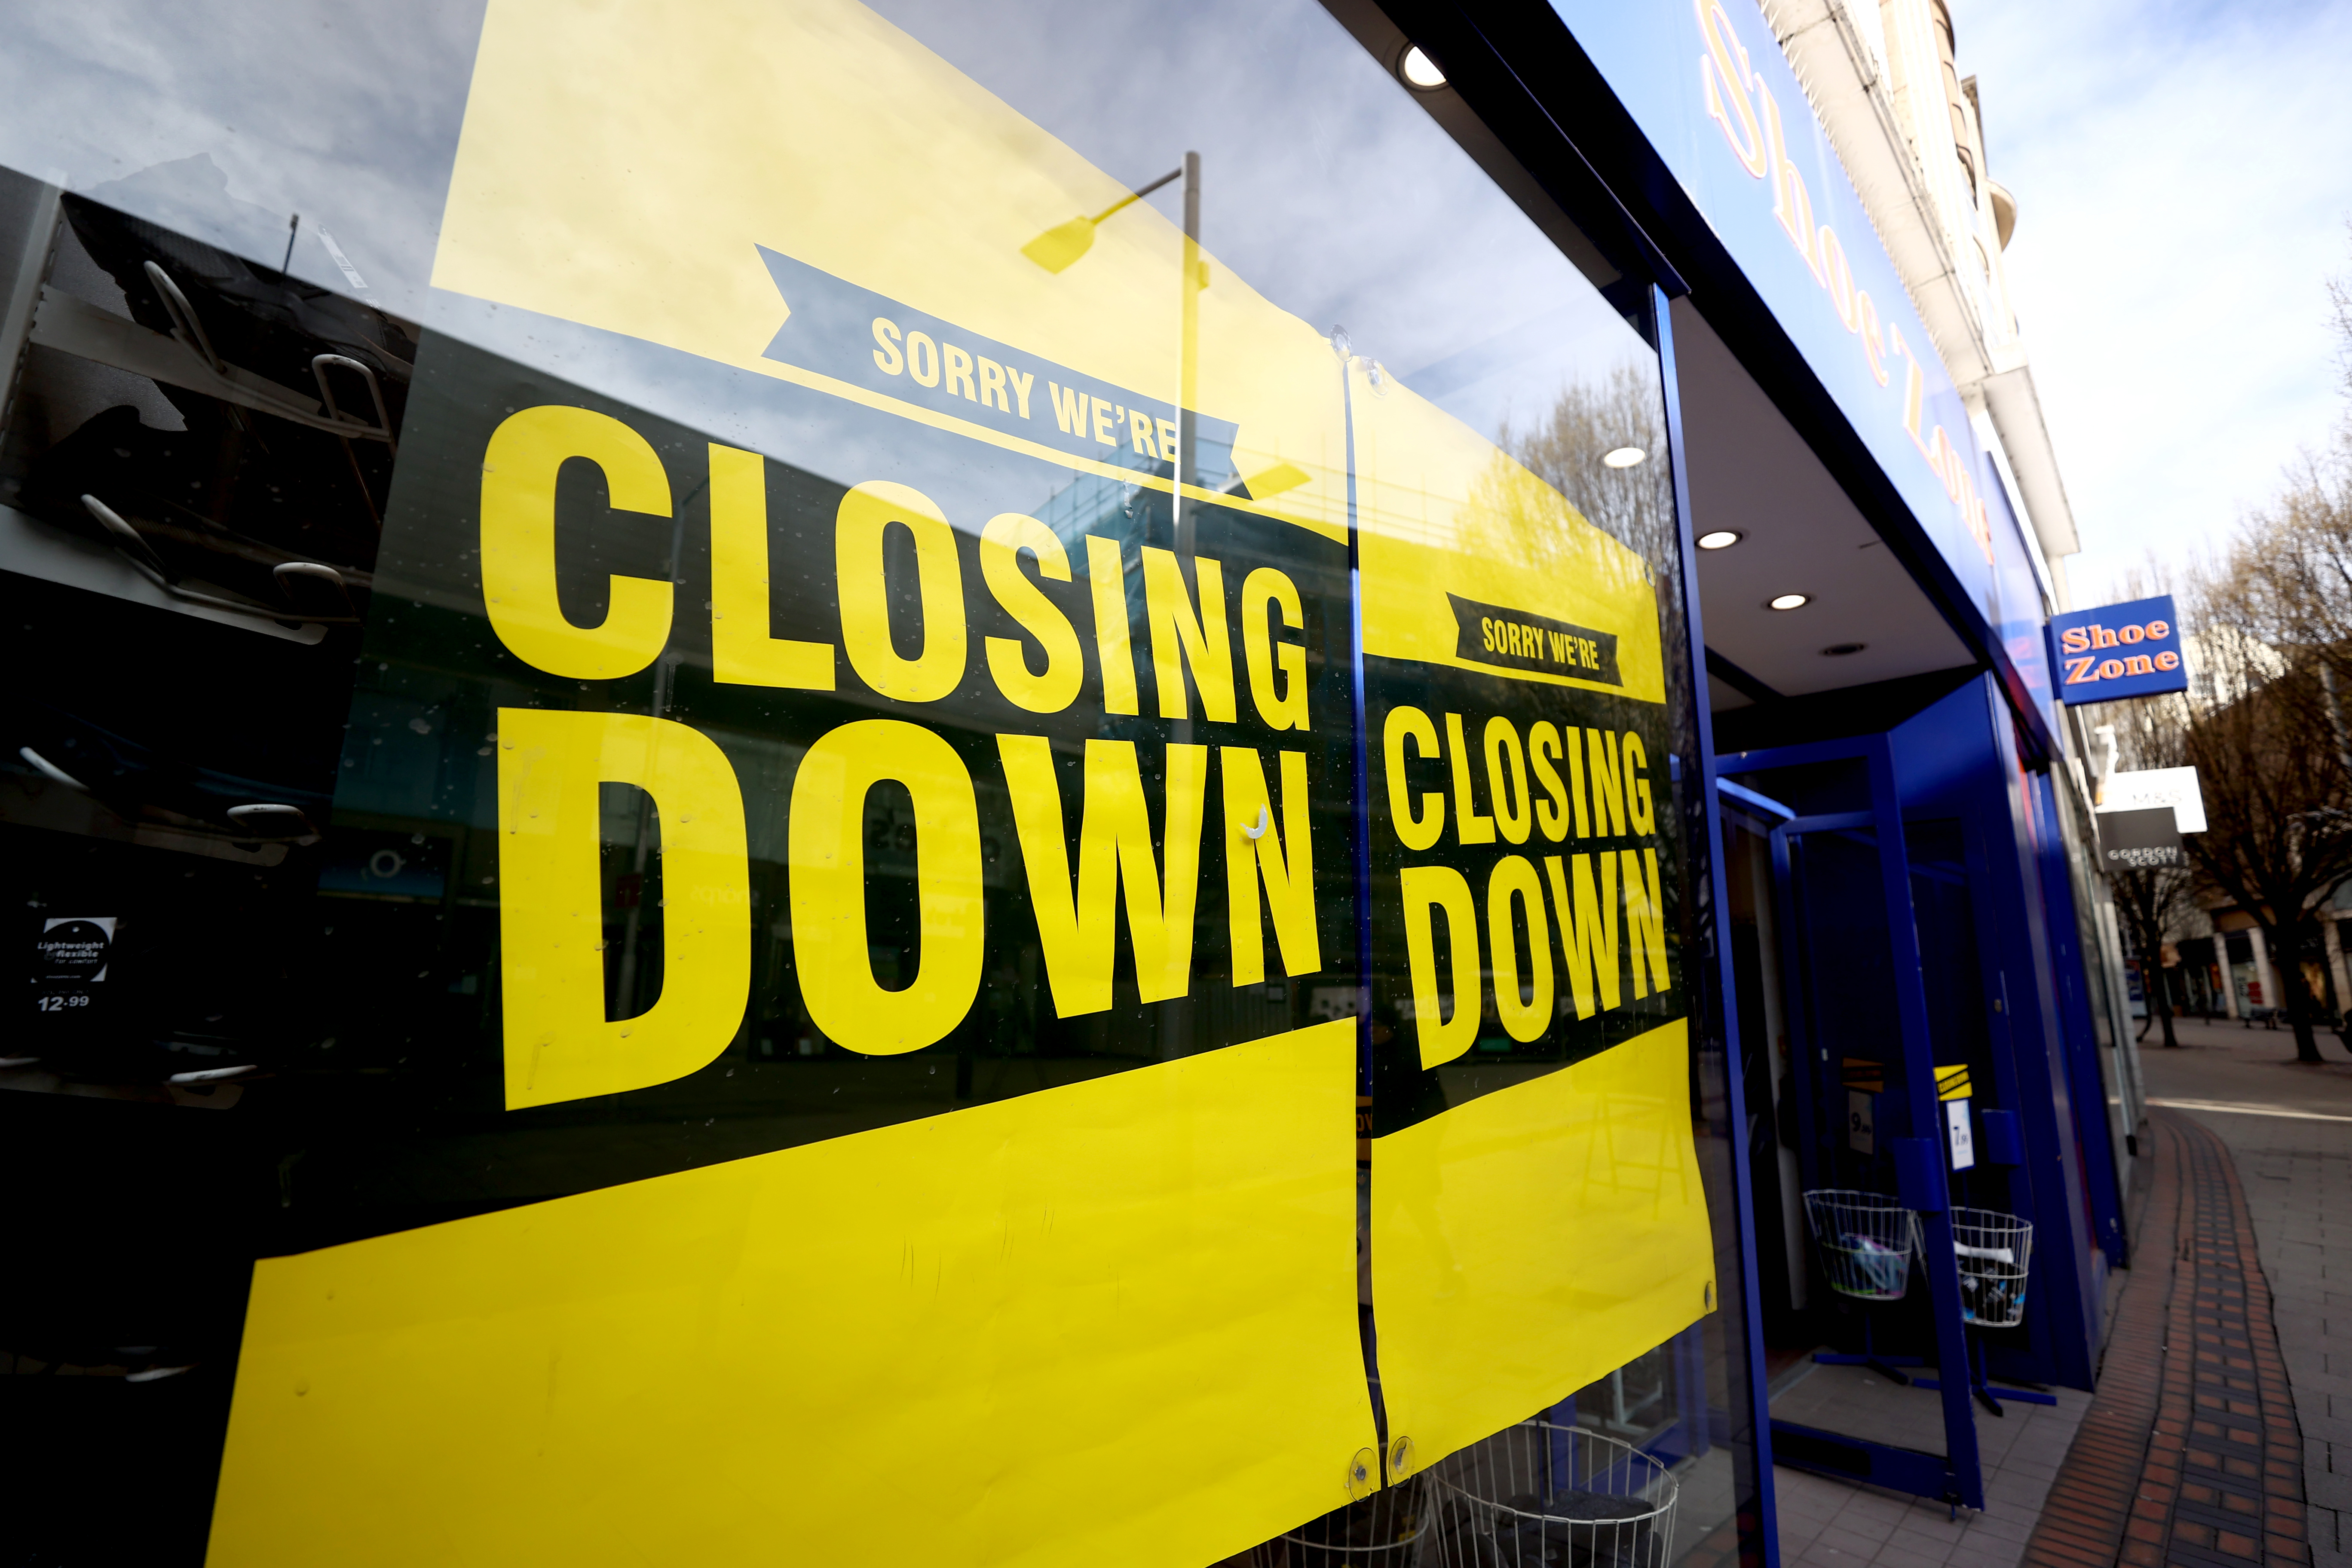 A Shoe Zone store in Nottingham which is closing down. The company is planning to cancel its final dividend payment, after witnessing a drop in footfall as a result of the Covid-19 coronavirus pandemic. (Photo by Tim Goode/PA Images via Getty Images)